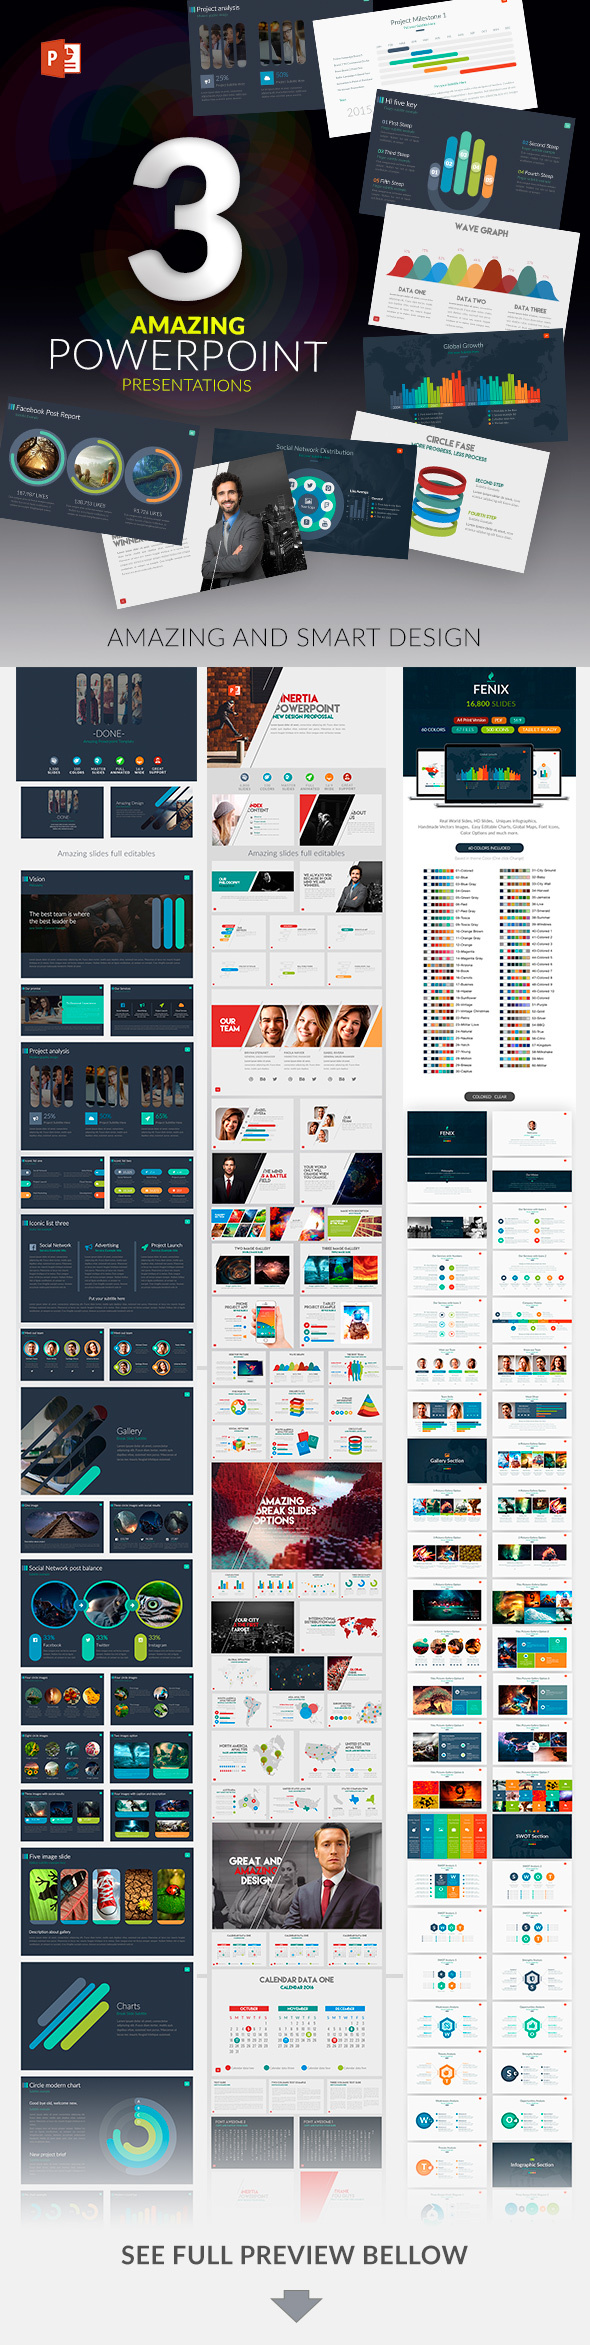 3 powerpoint templates pack template download here http 3 powerpoint templates pack by zacomic toneelgroepblik Image collections